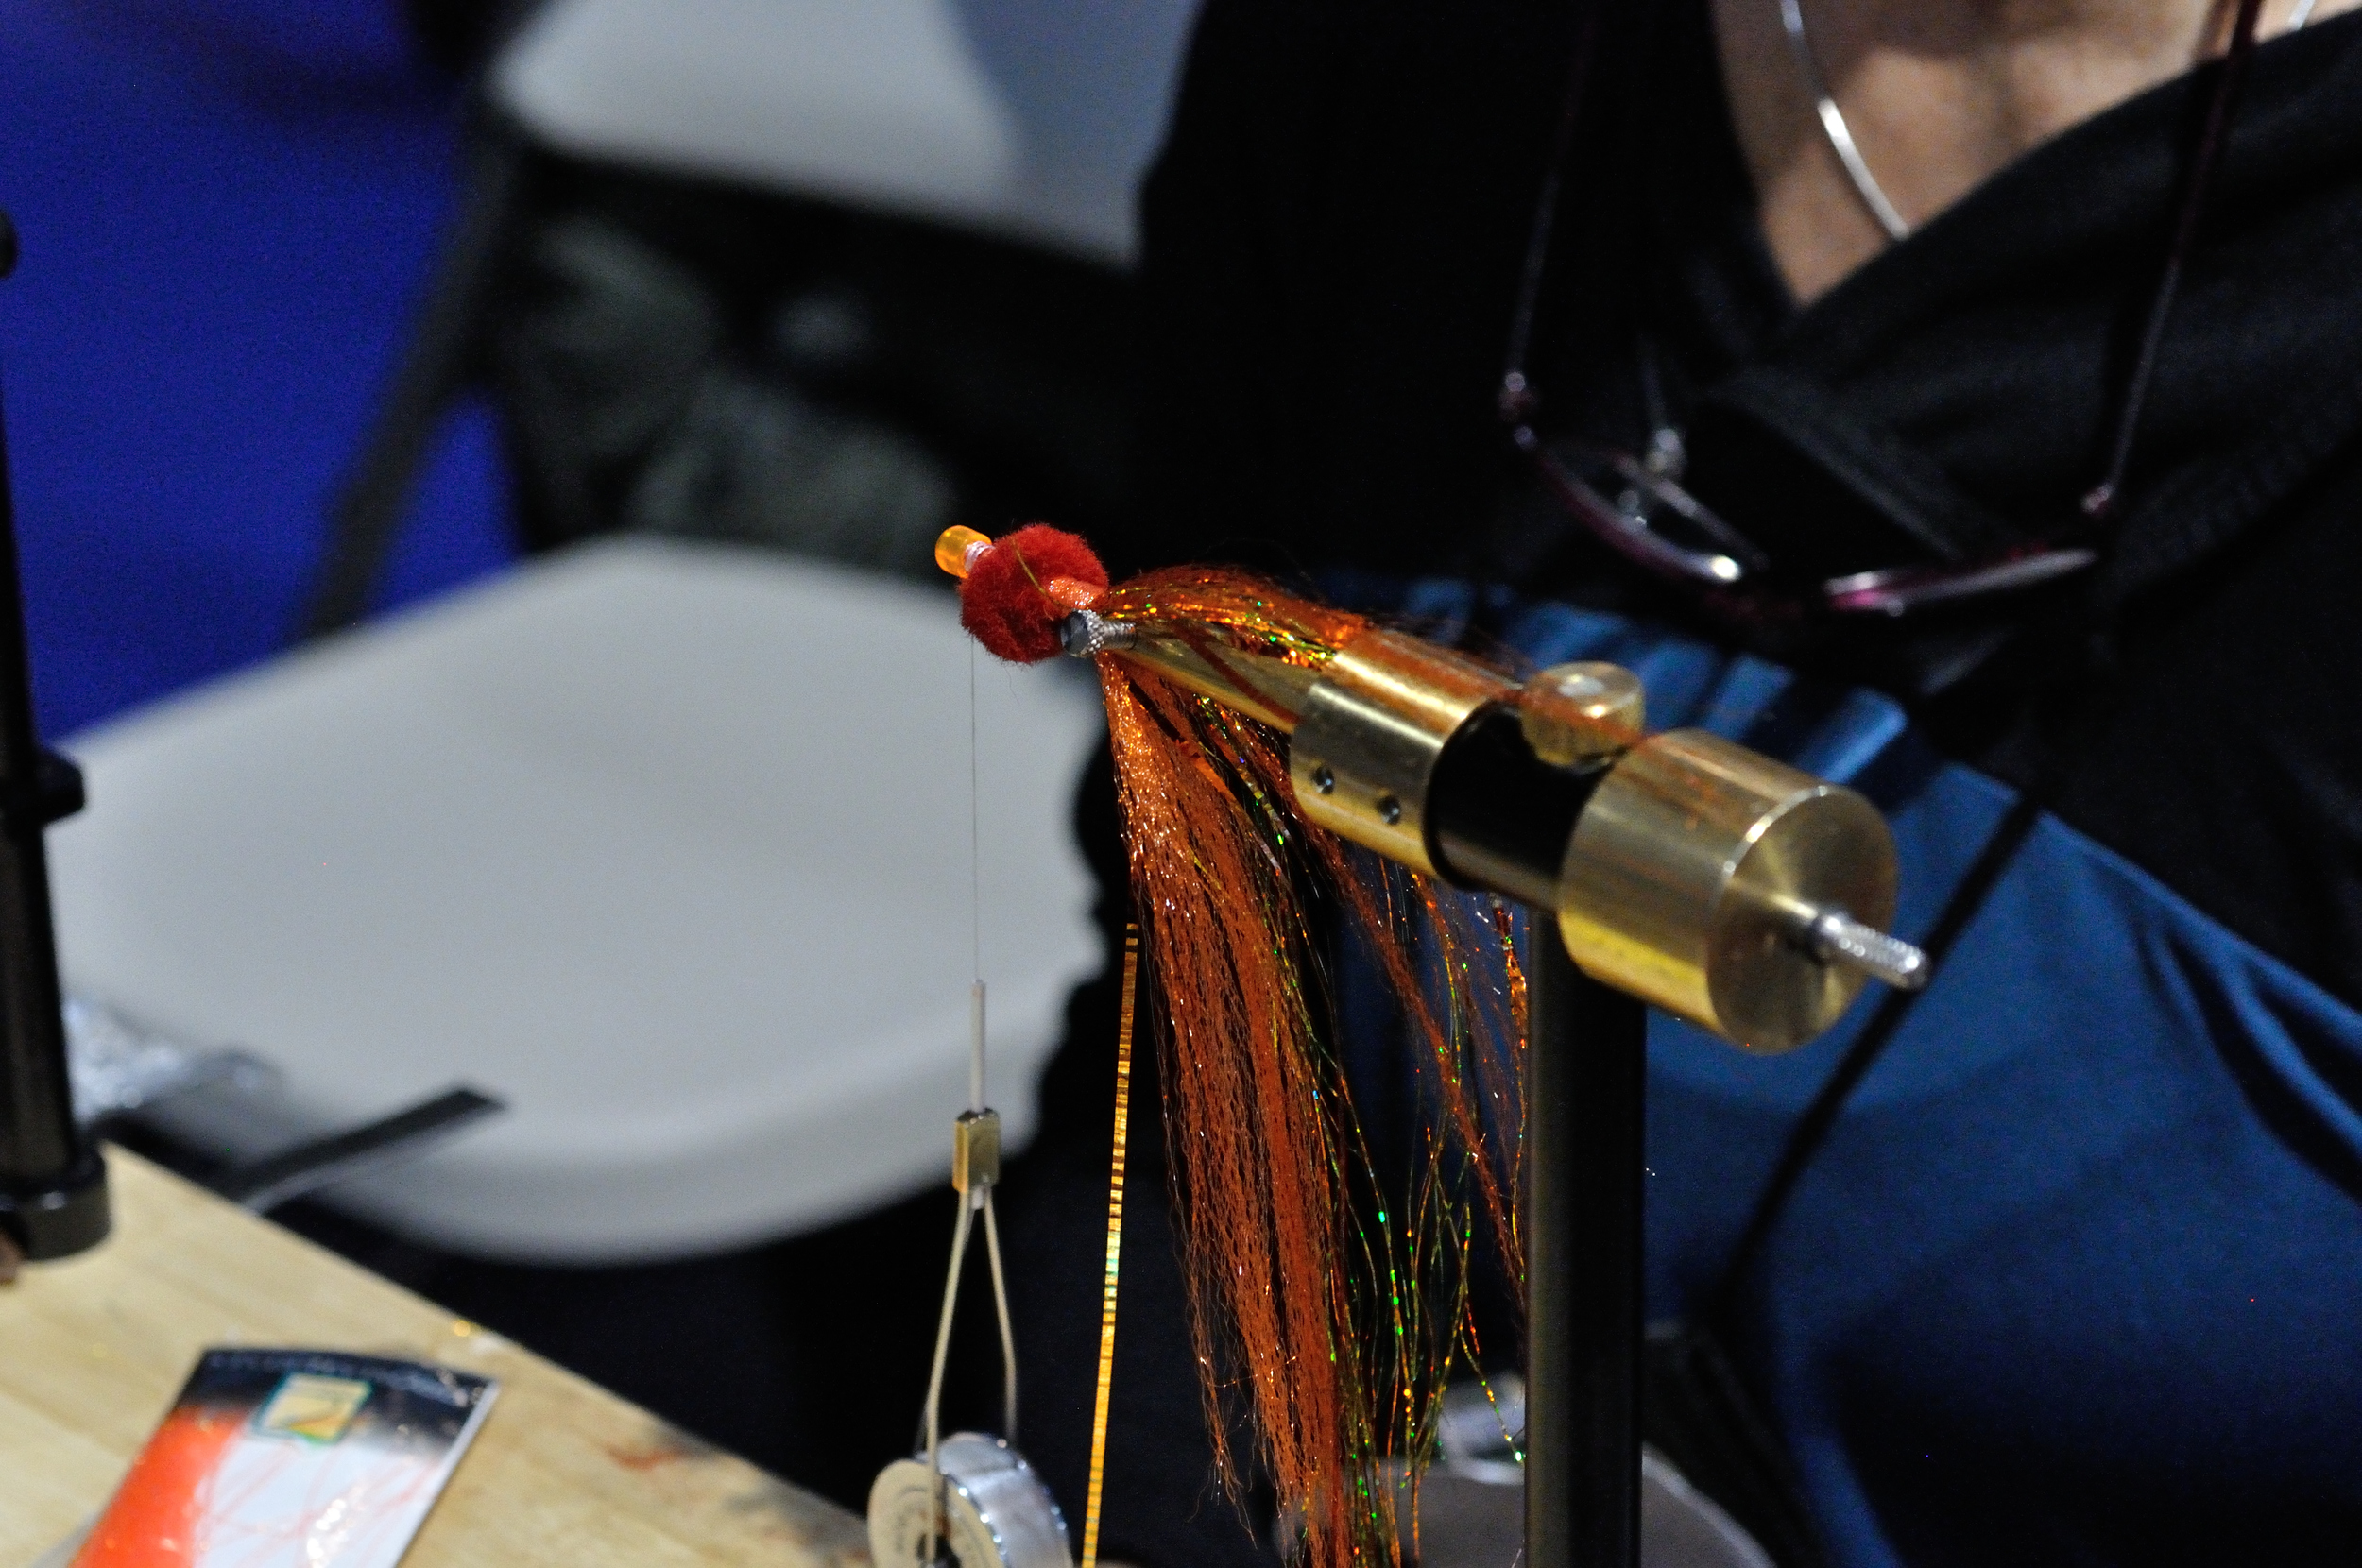 They were using craft egg balls as a means to flair materials around the hook.